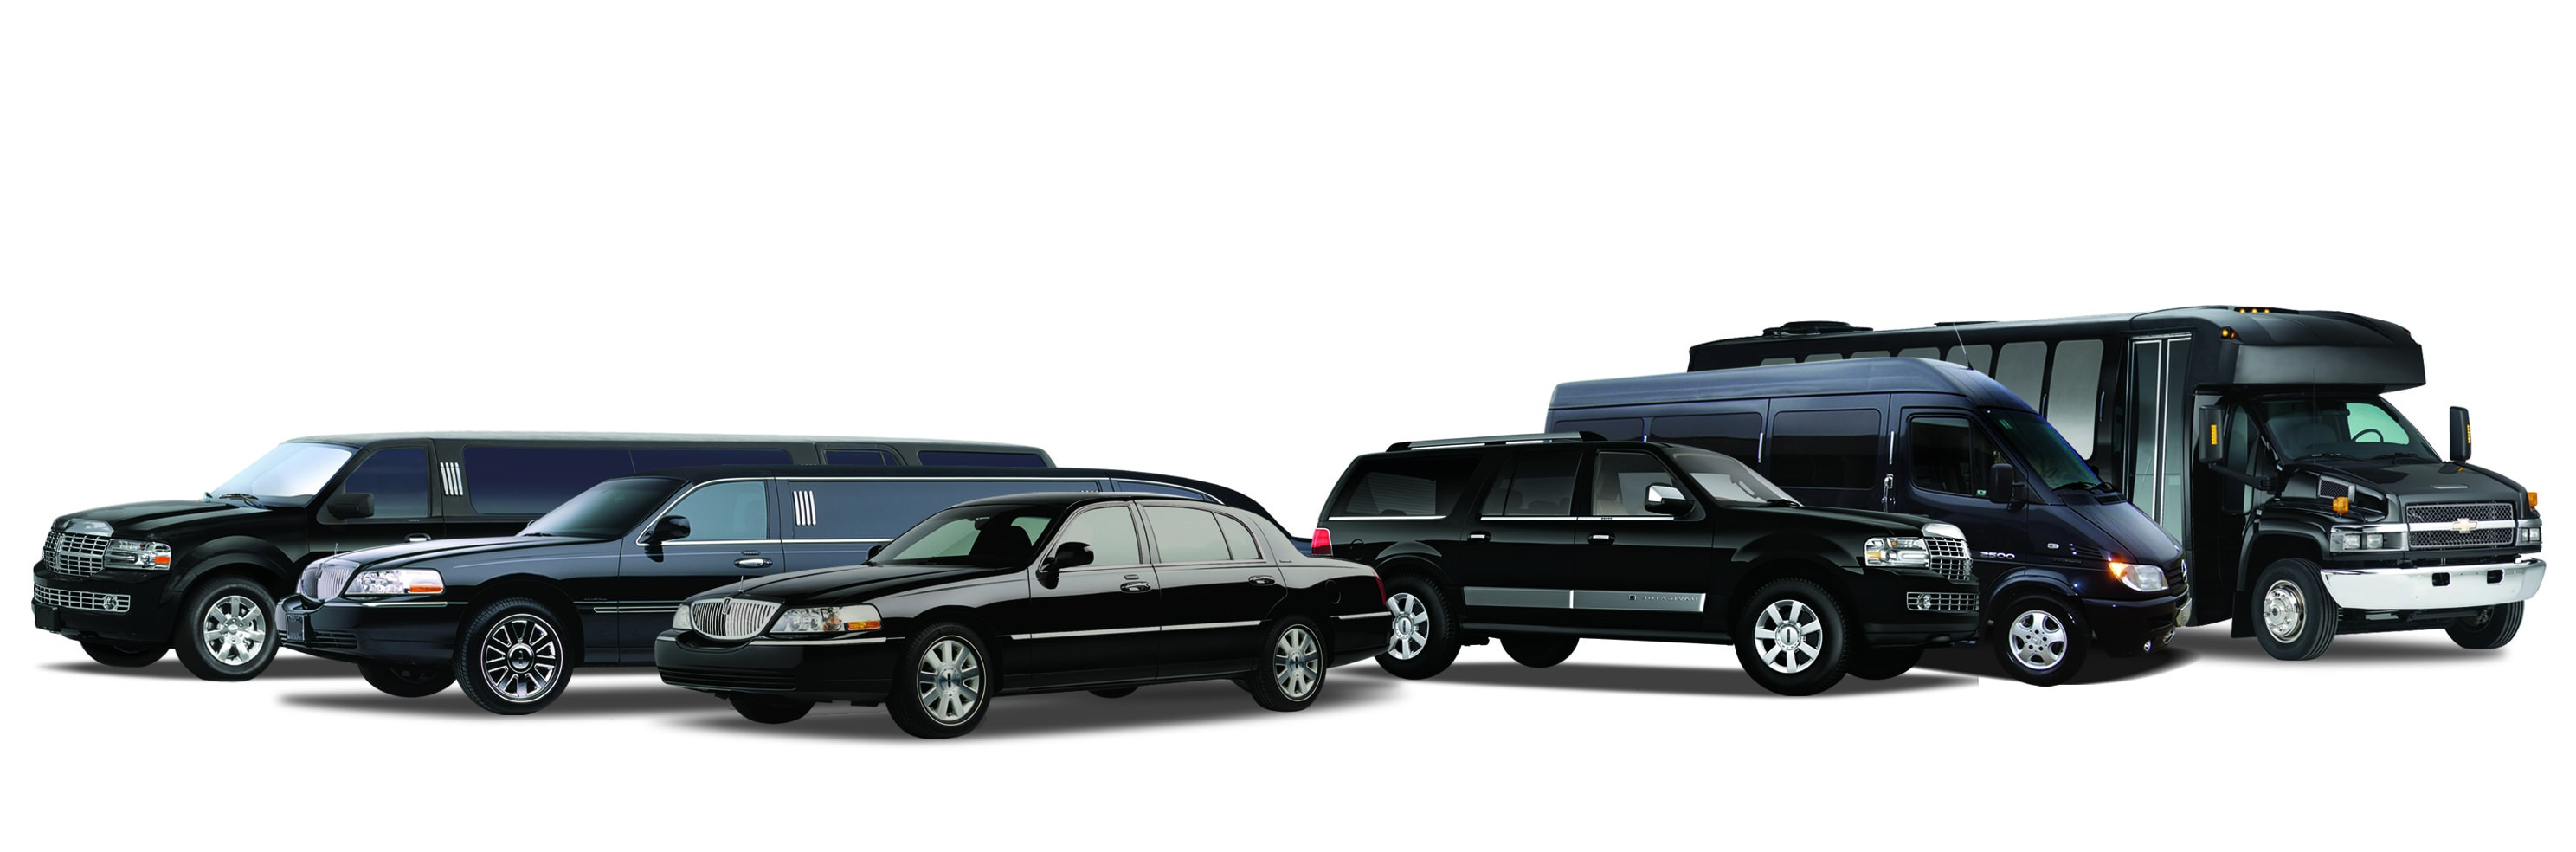 Canmore Limo